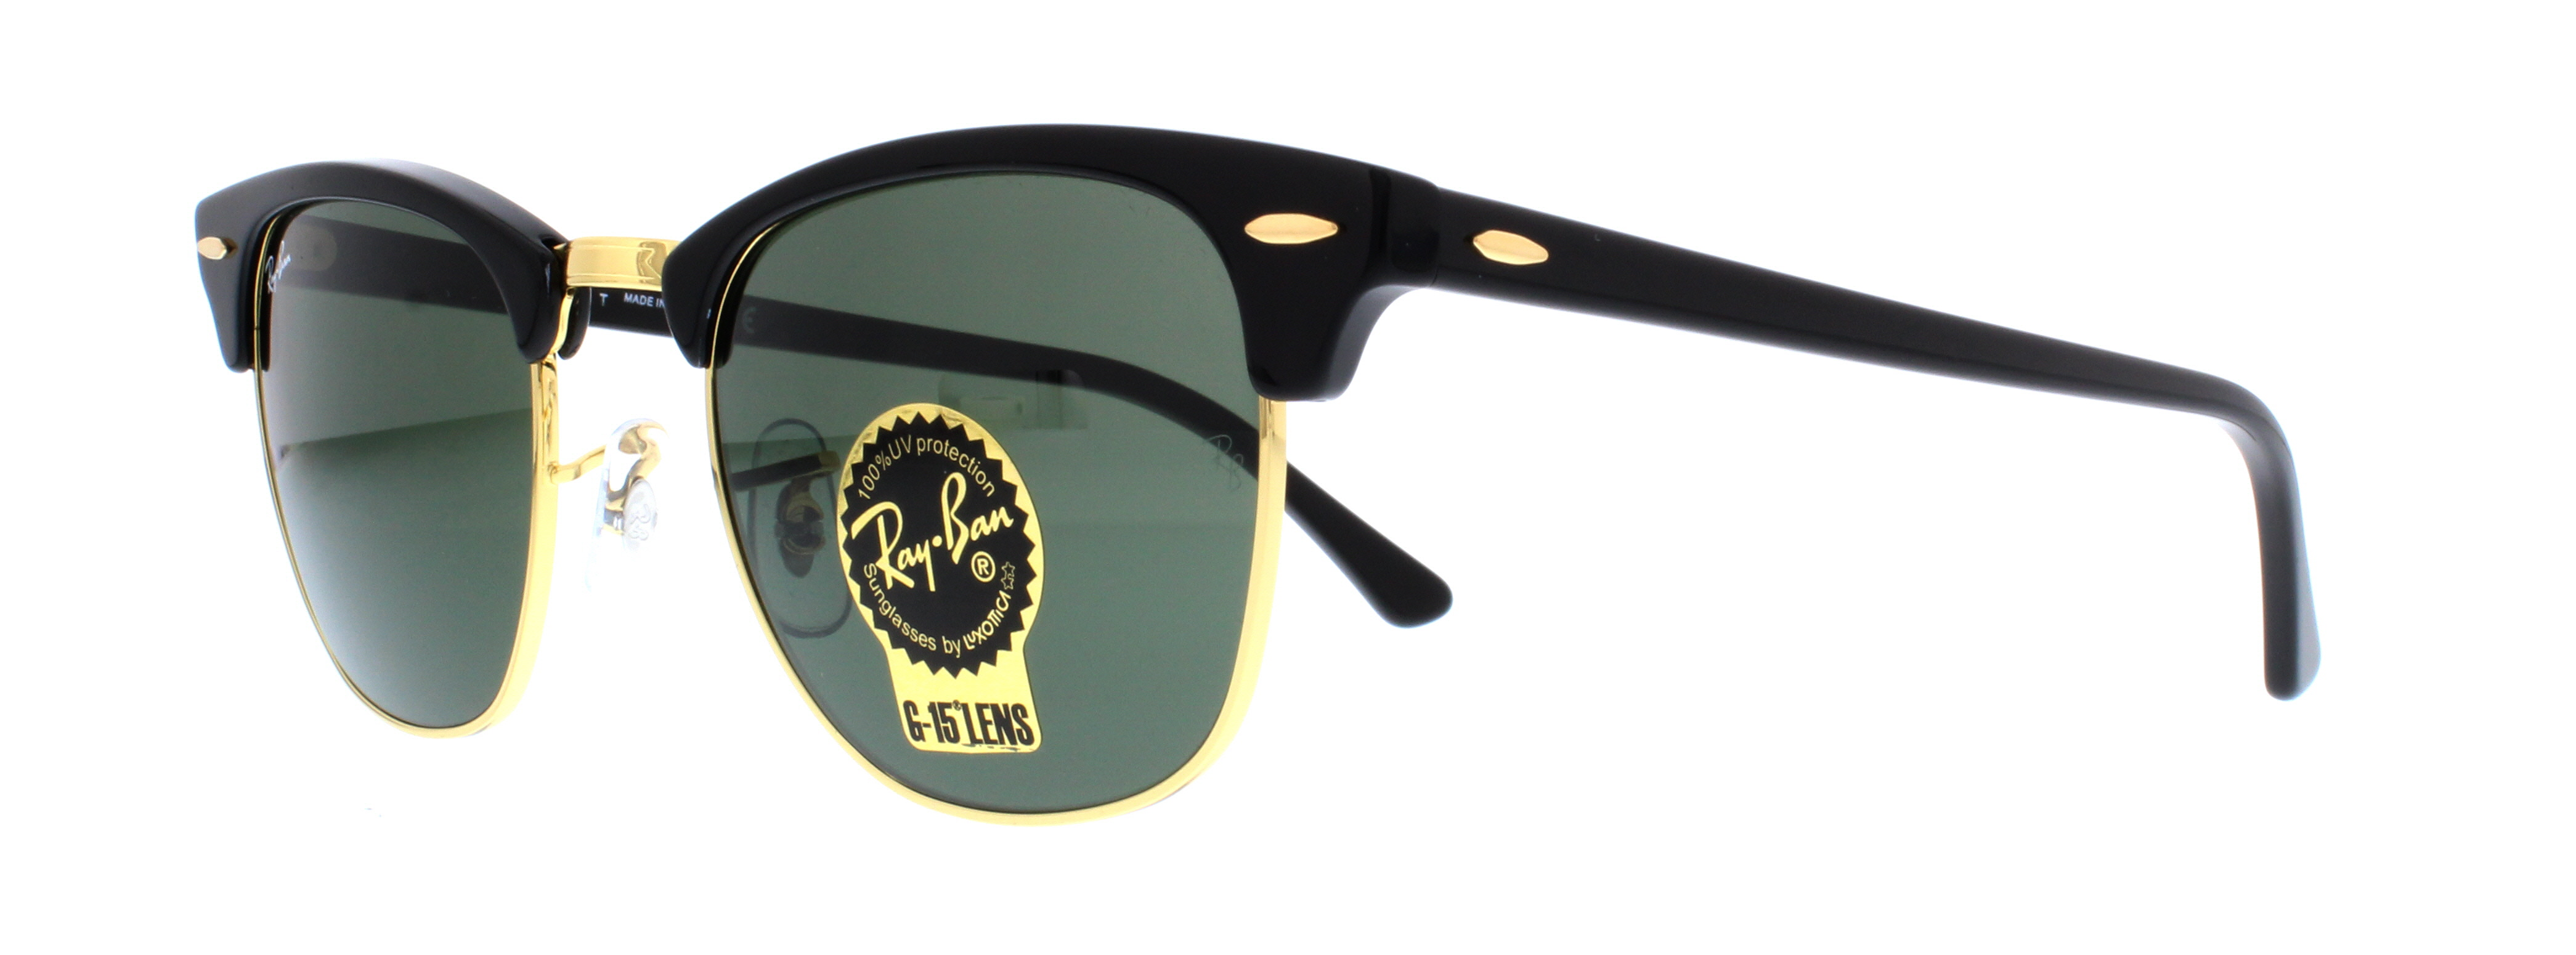 Picture of Ray Ban RB3016 Clubmaster